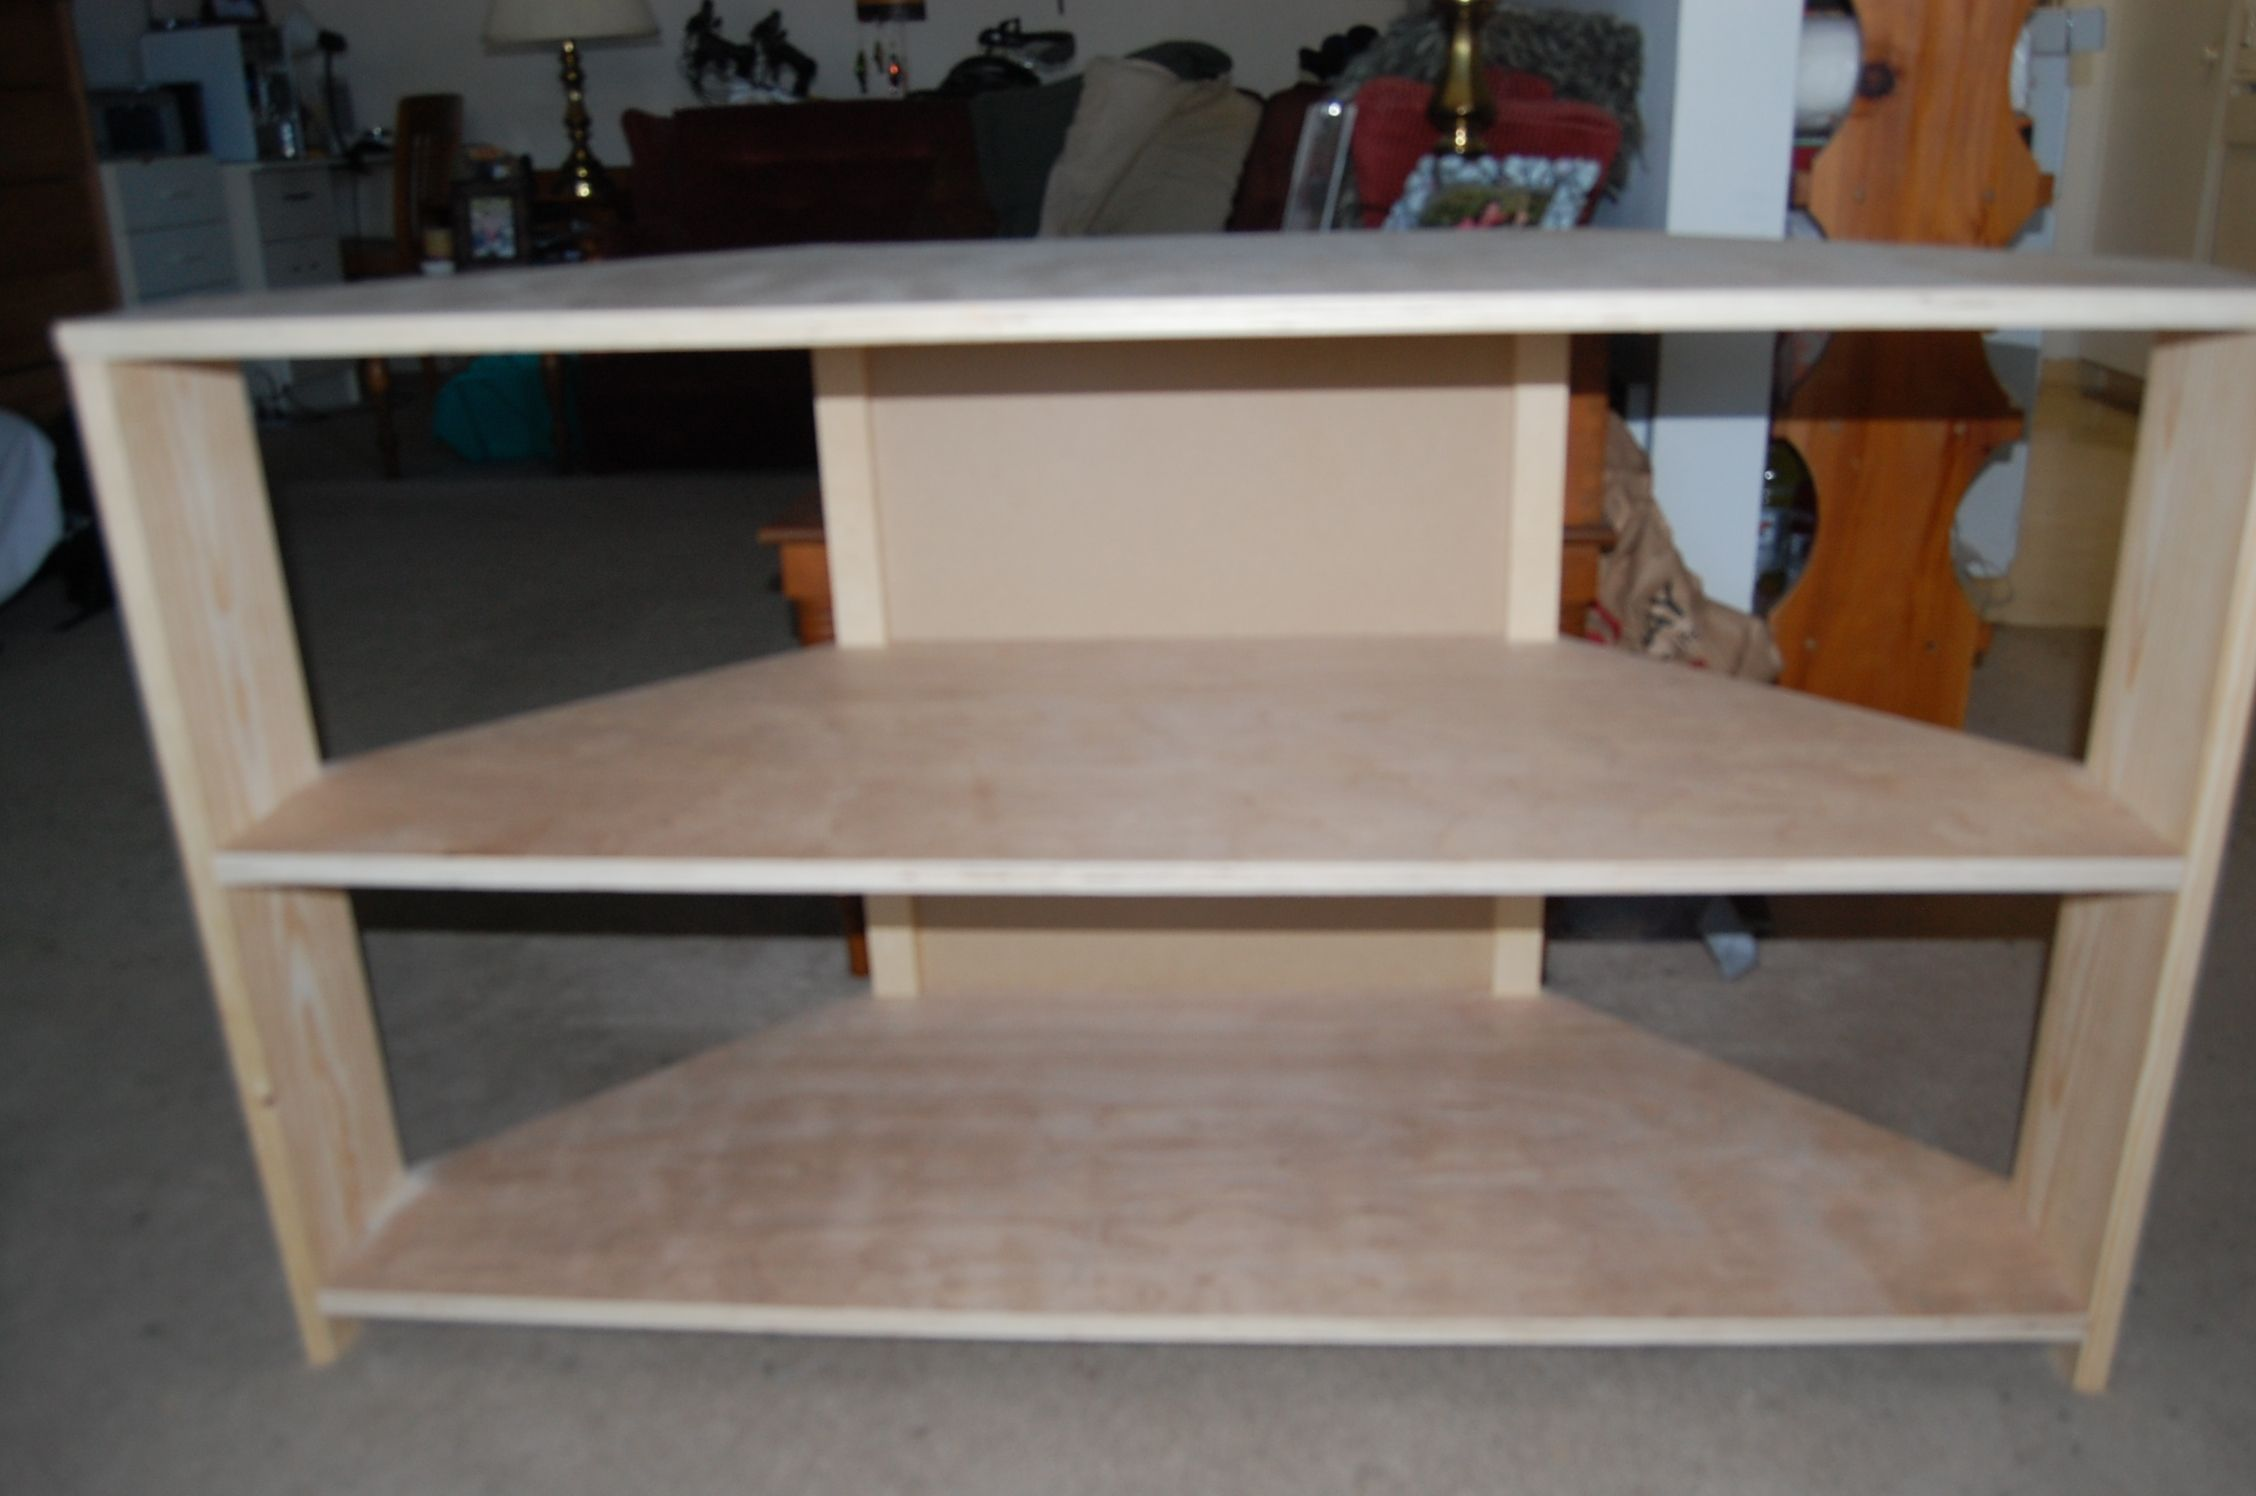 Pin by Riva Sakina on DIY TV Stand Tv stand plans, Build